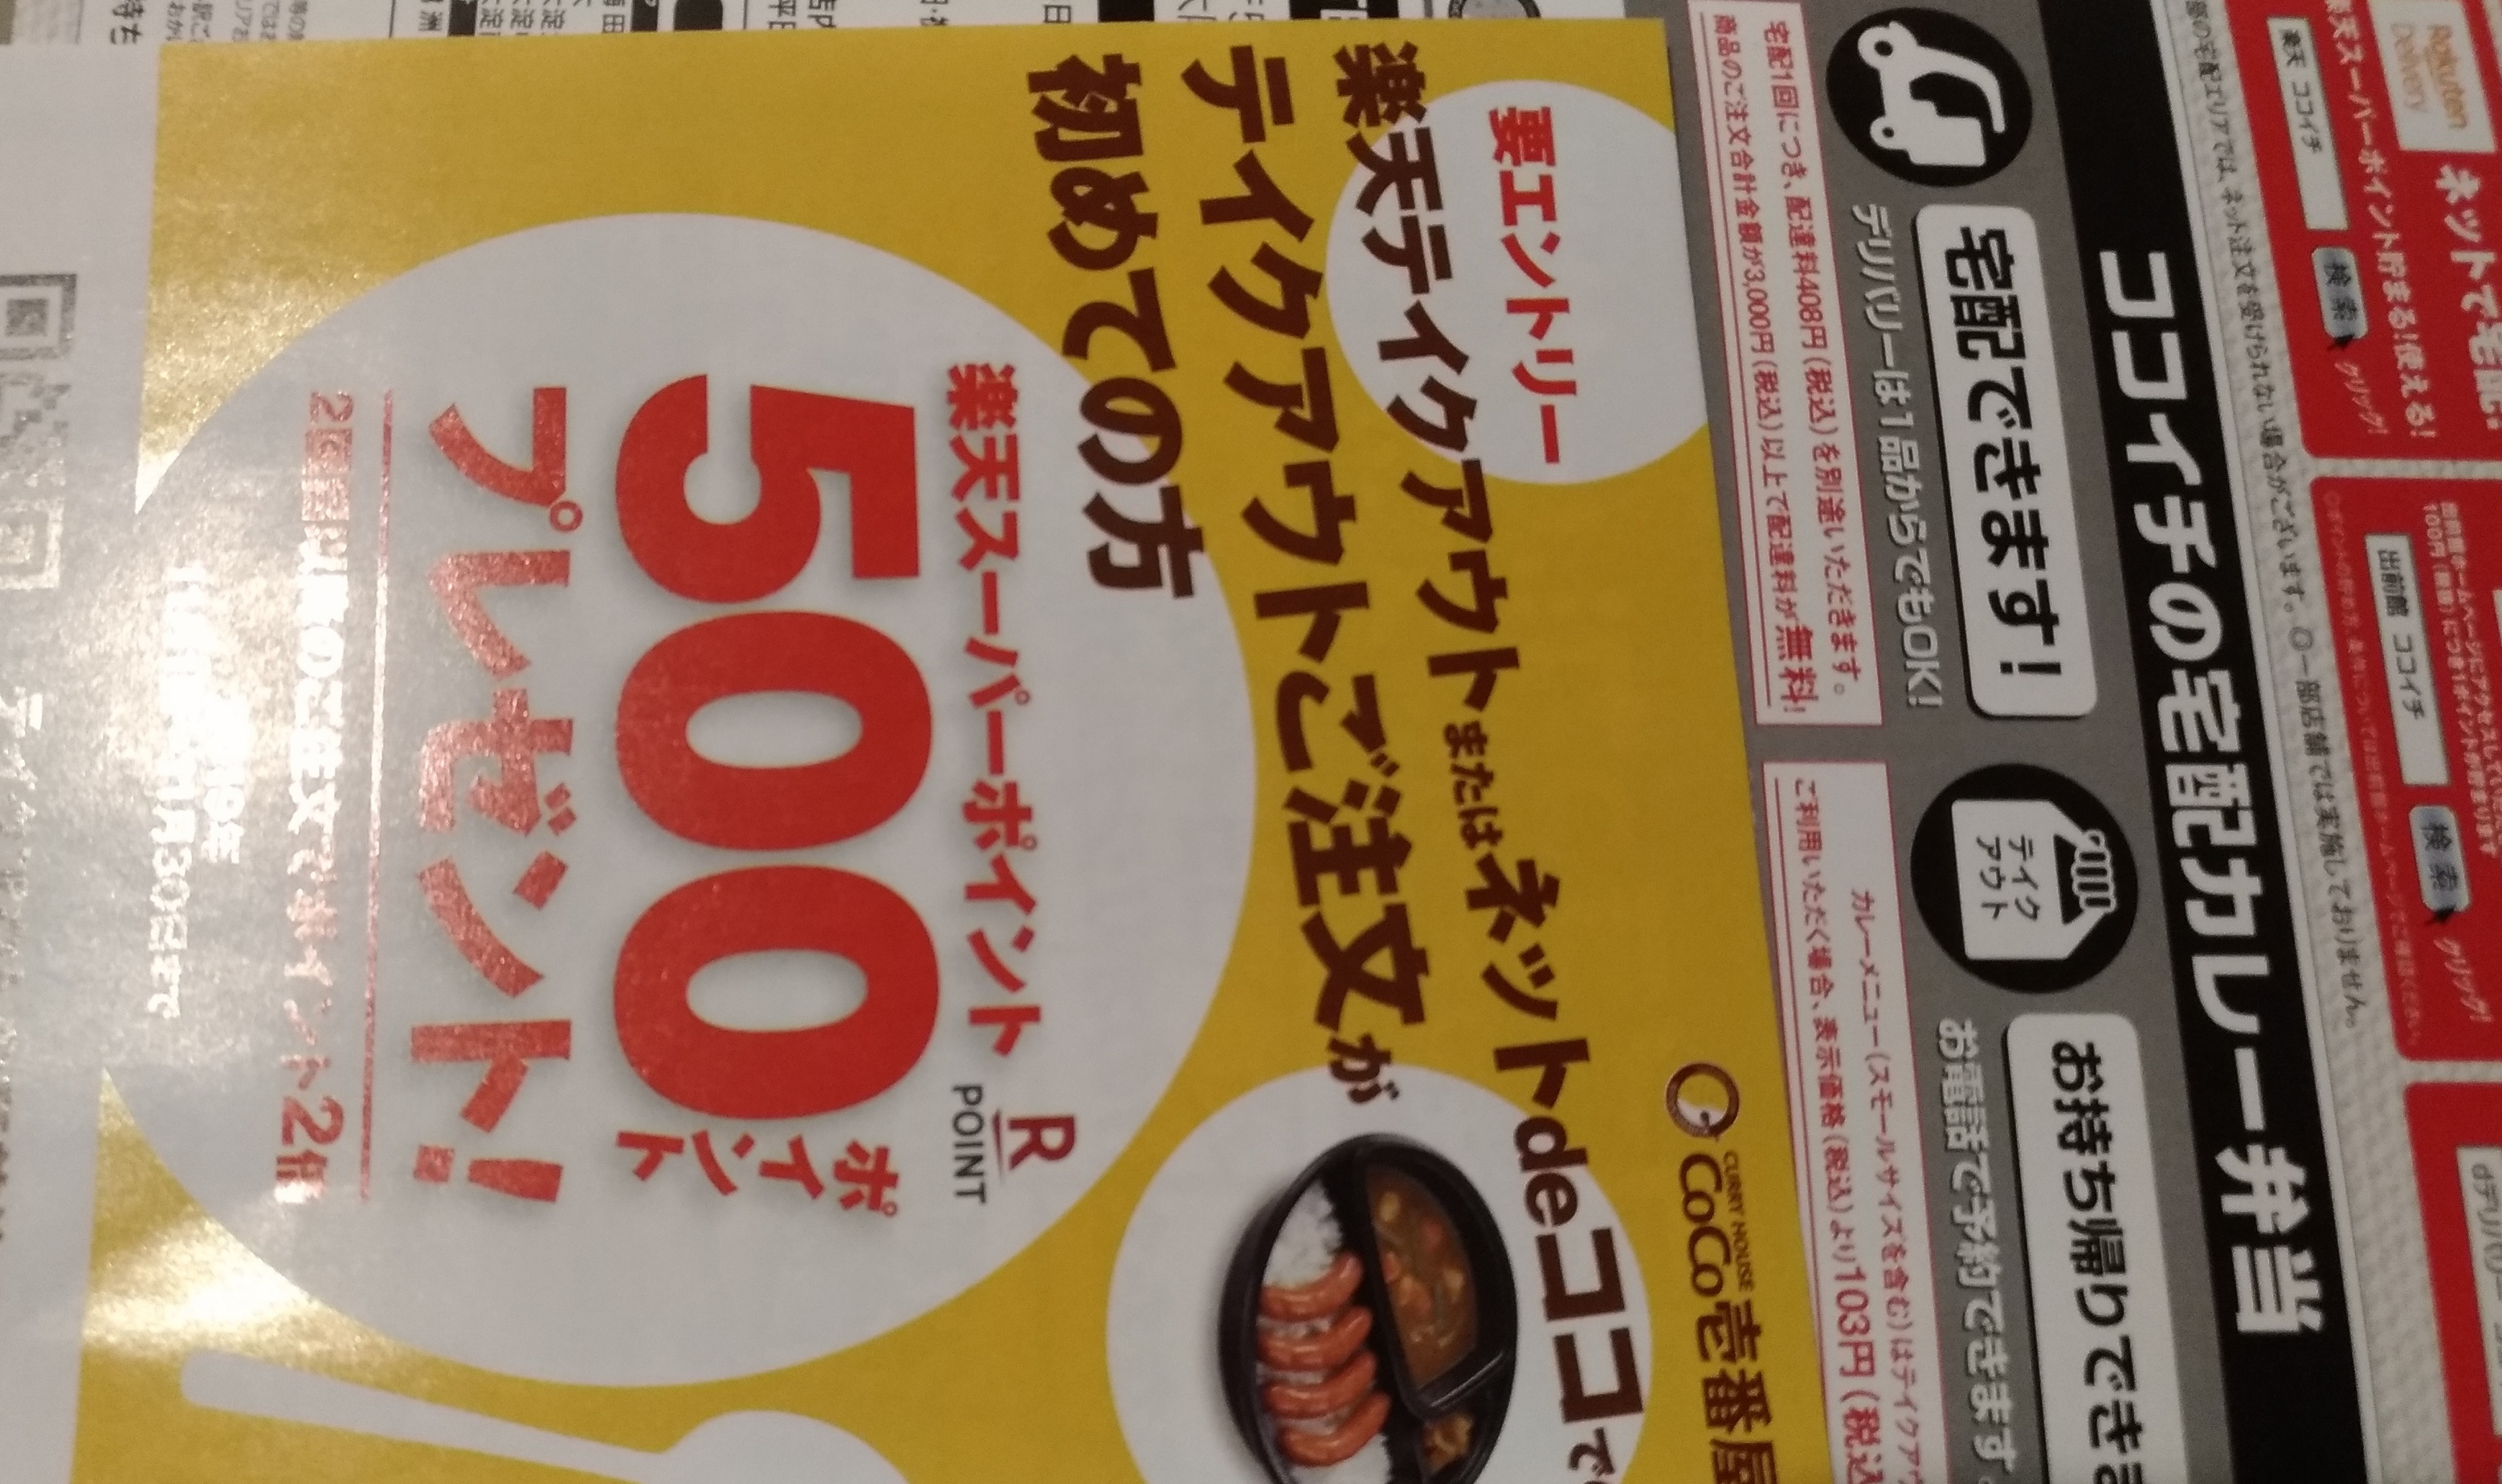 coco_ichi_curry_rakuten.jpg